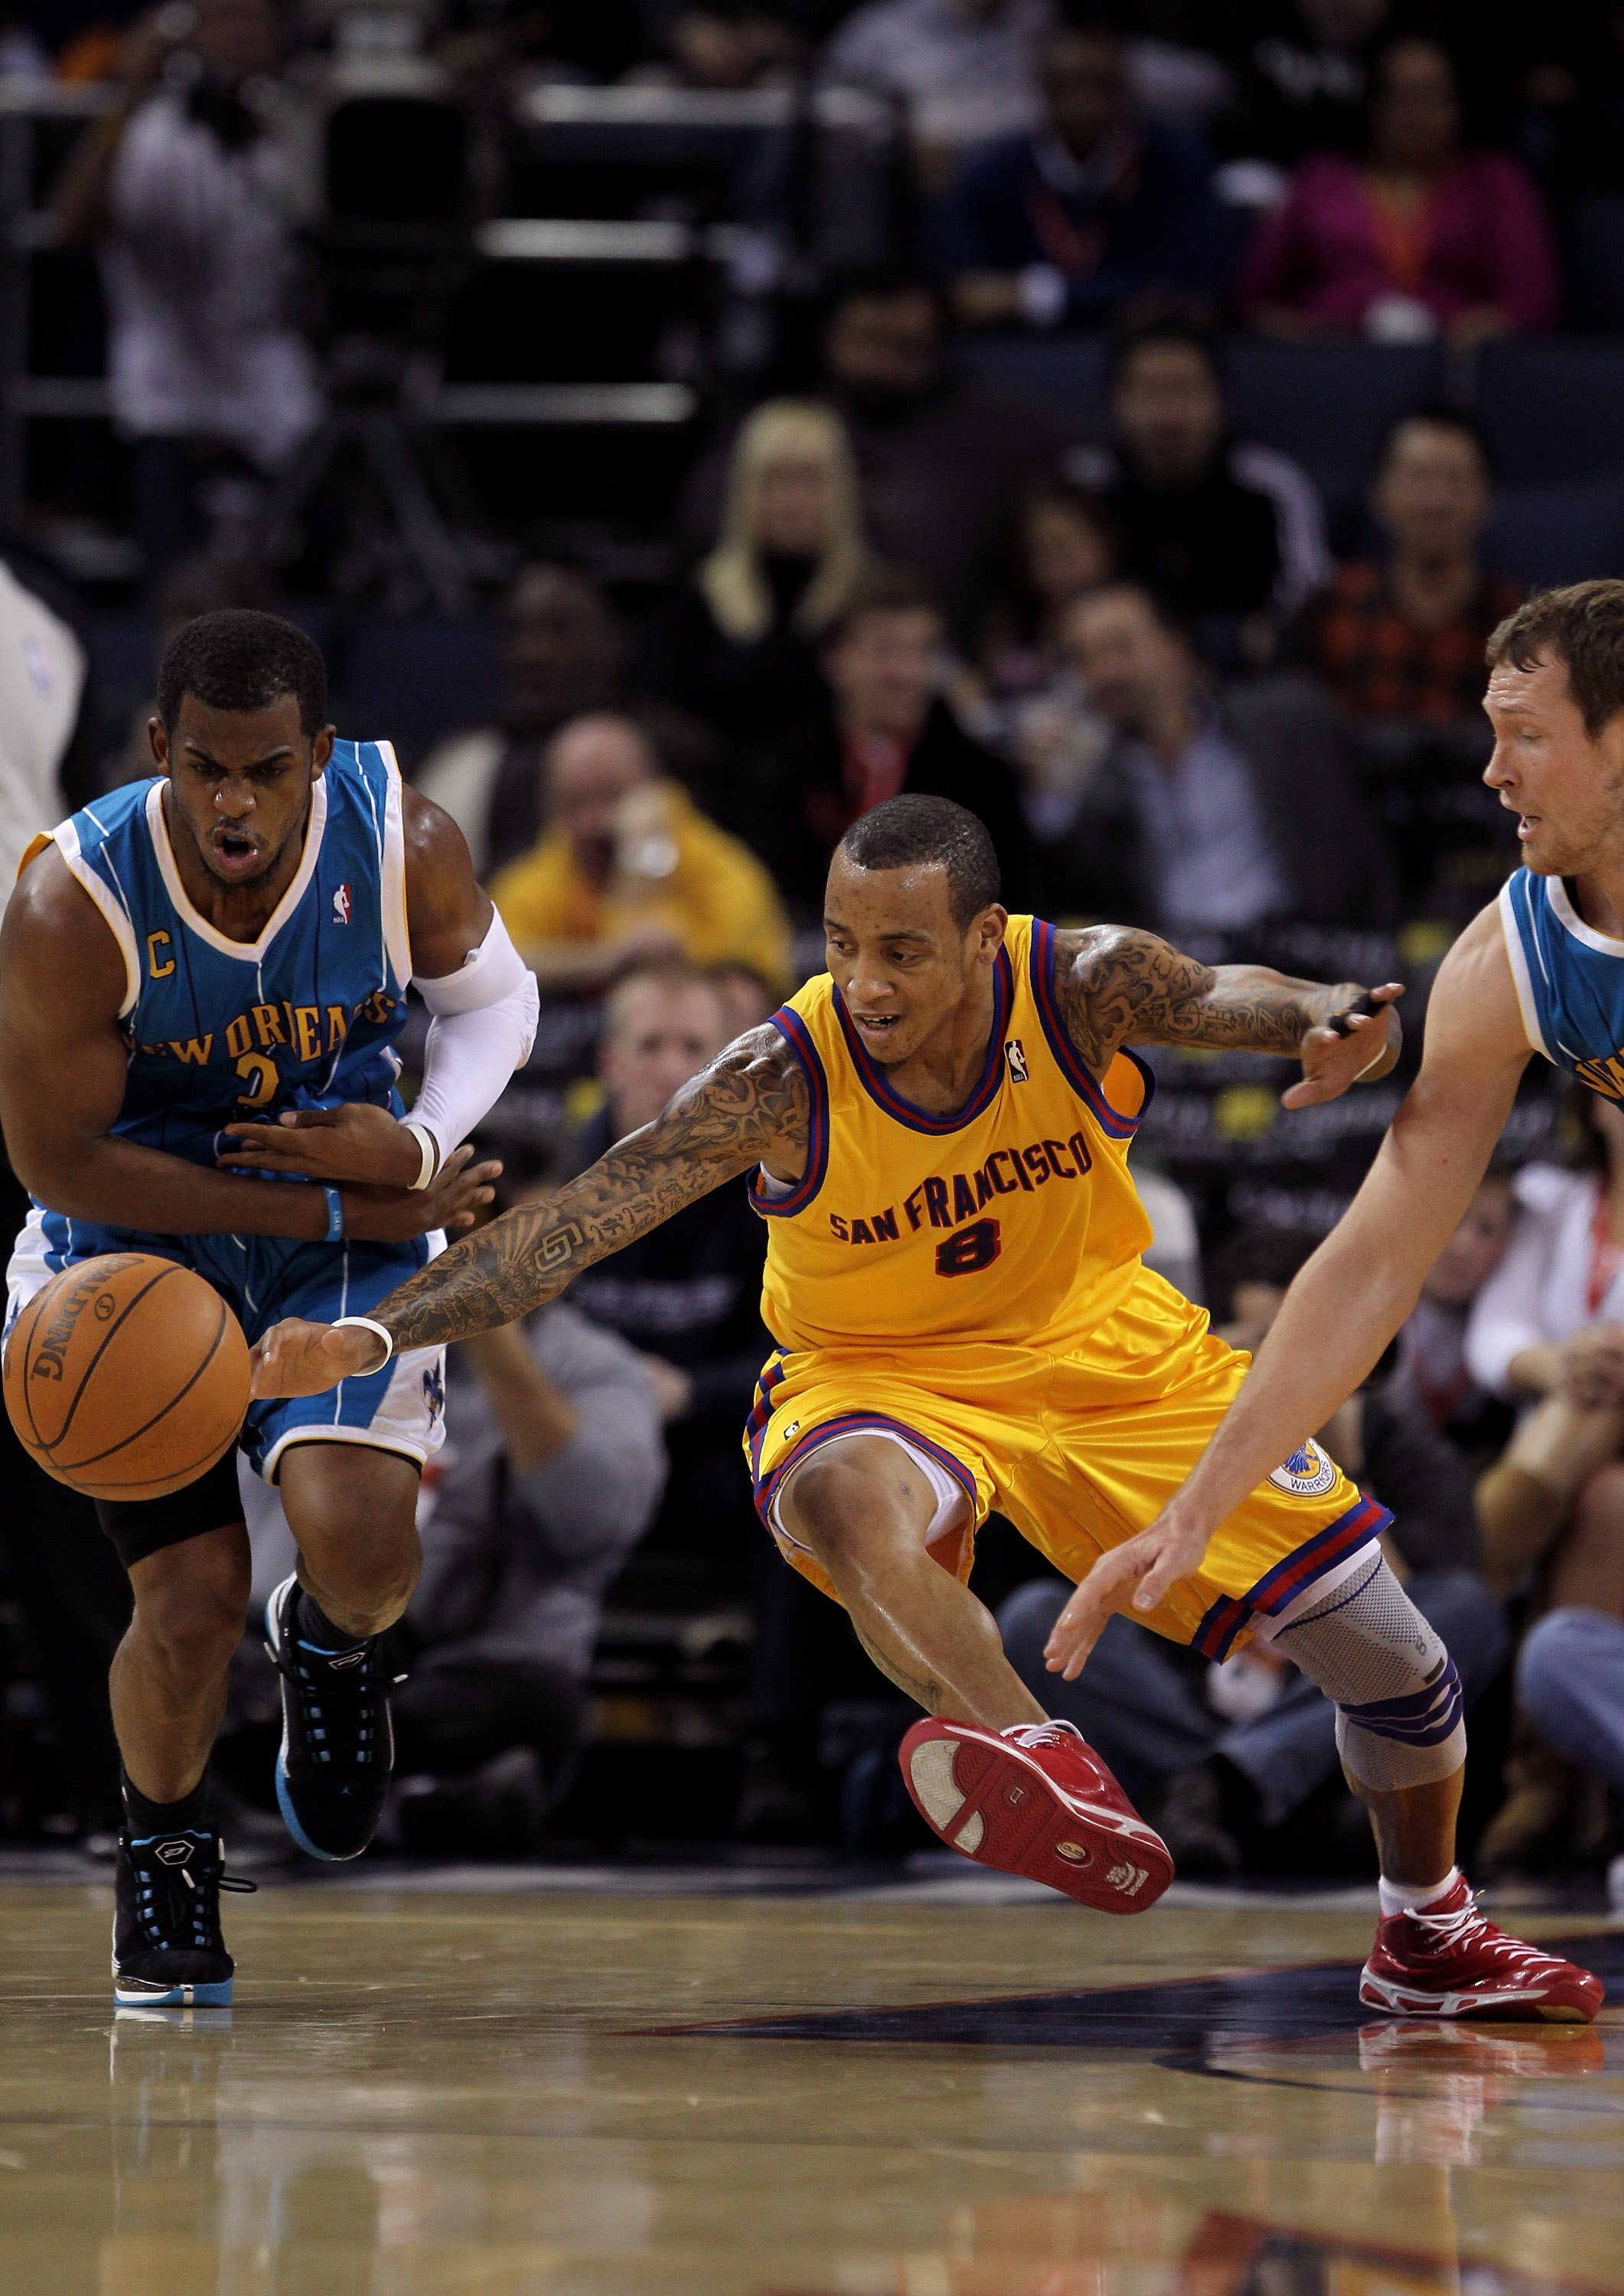 OAKLAND, CA - JANUARY 27:  Monta Ellis #8 of the Golden State Warriors and Chris Paul #3 of the New Orleans Hornets scramble for a loose ball at Oracle Arena on January 27, 2010 in Oakland, California.  NOTE TO USER: User expressly acknowledges and agrees